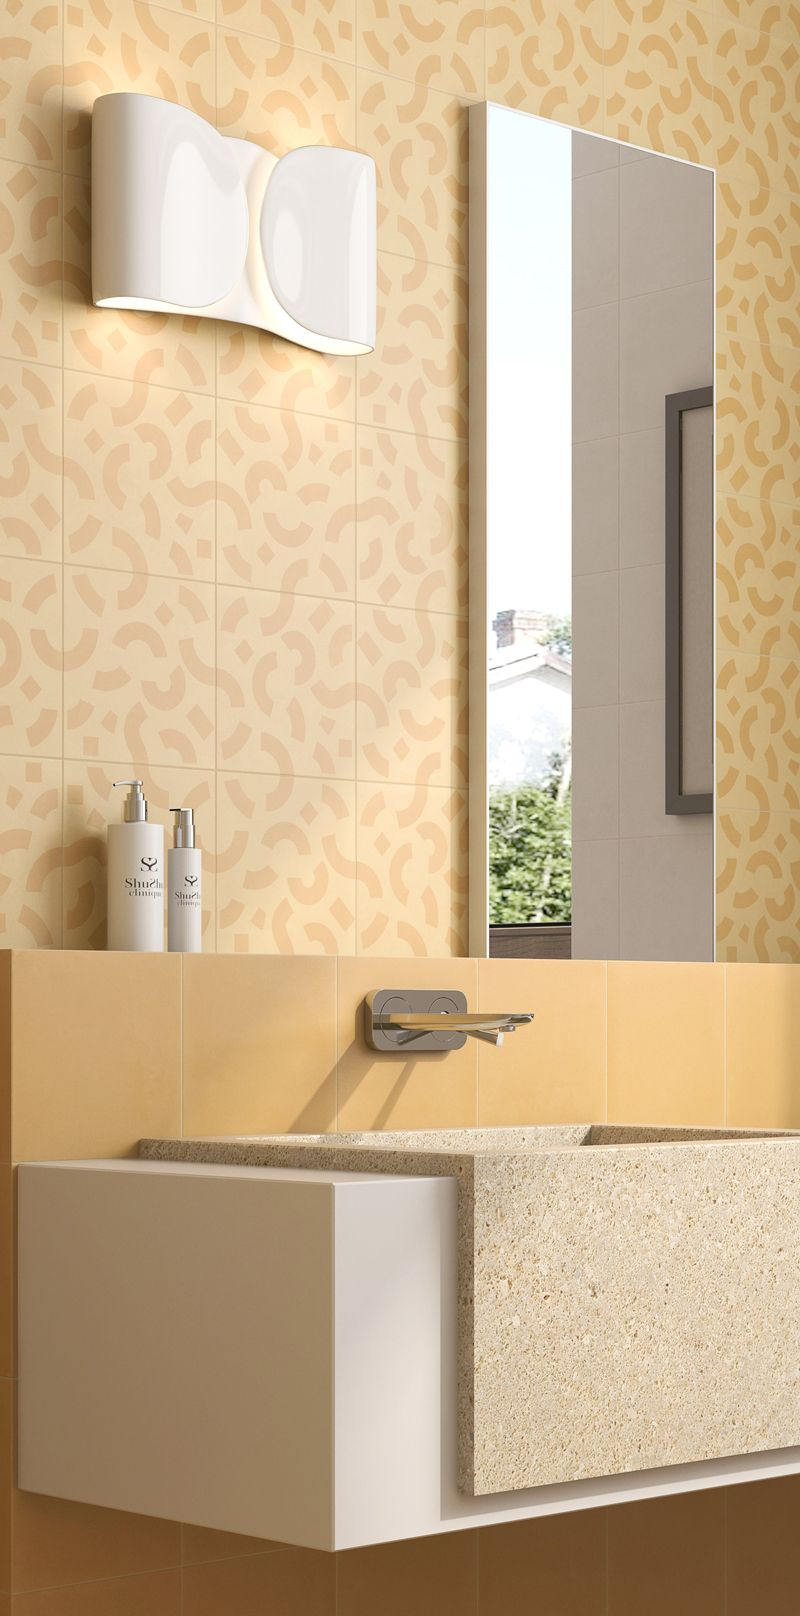 Trending Bathroom Designs Amusing Trending #bathroom Ceramic Tiles Design An Exclusive #bathroom Decorating Inspiration